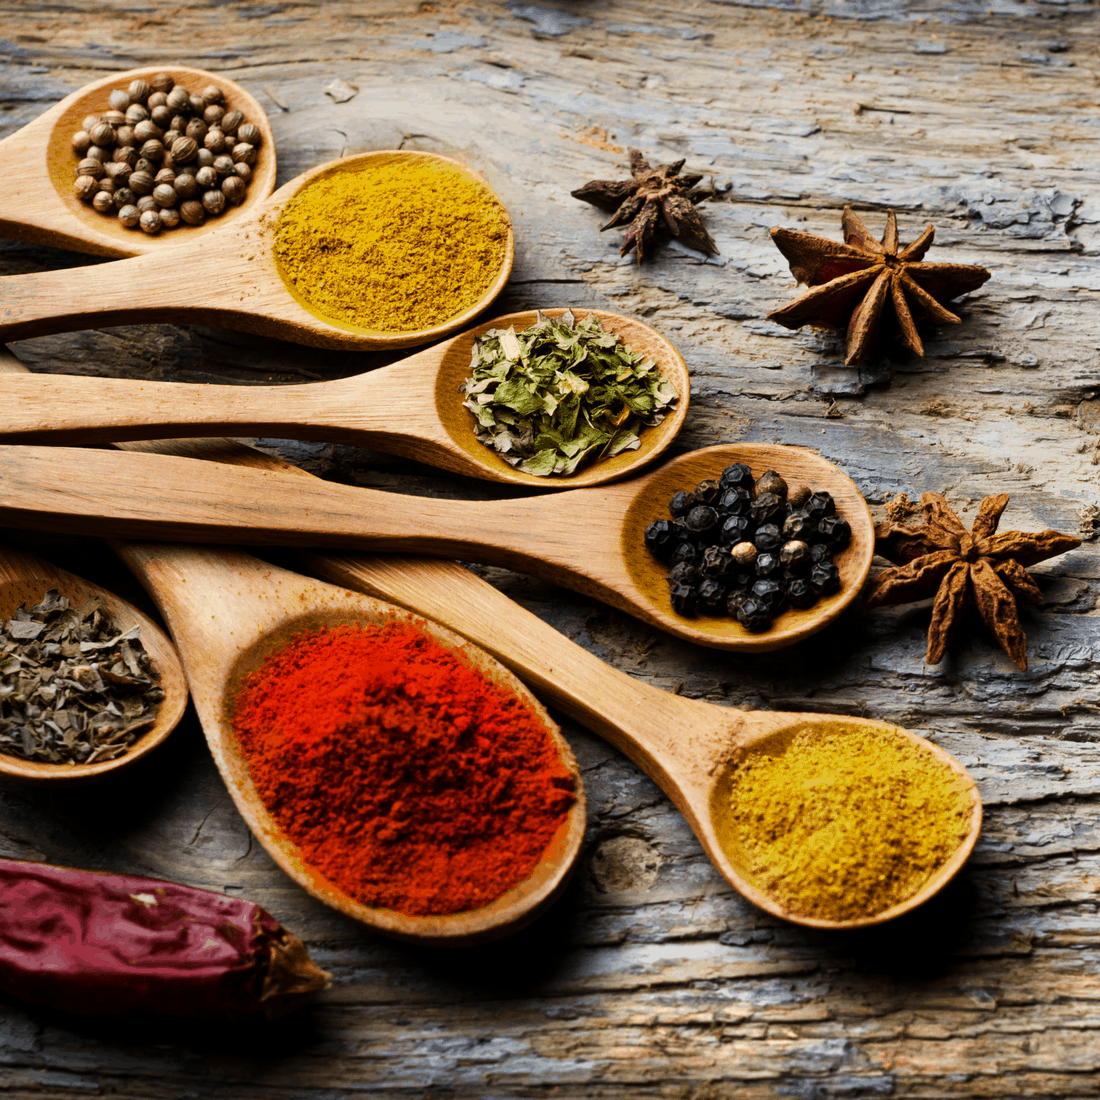 Make Your Own Healthy Seasonings